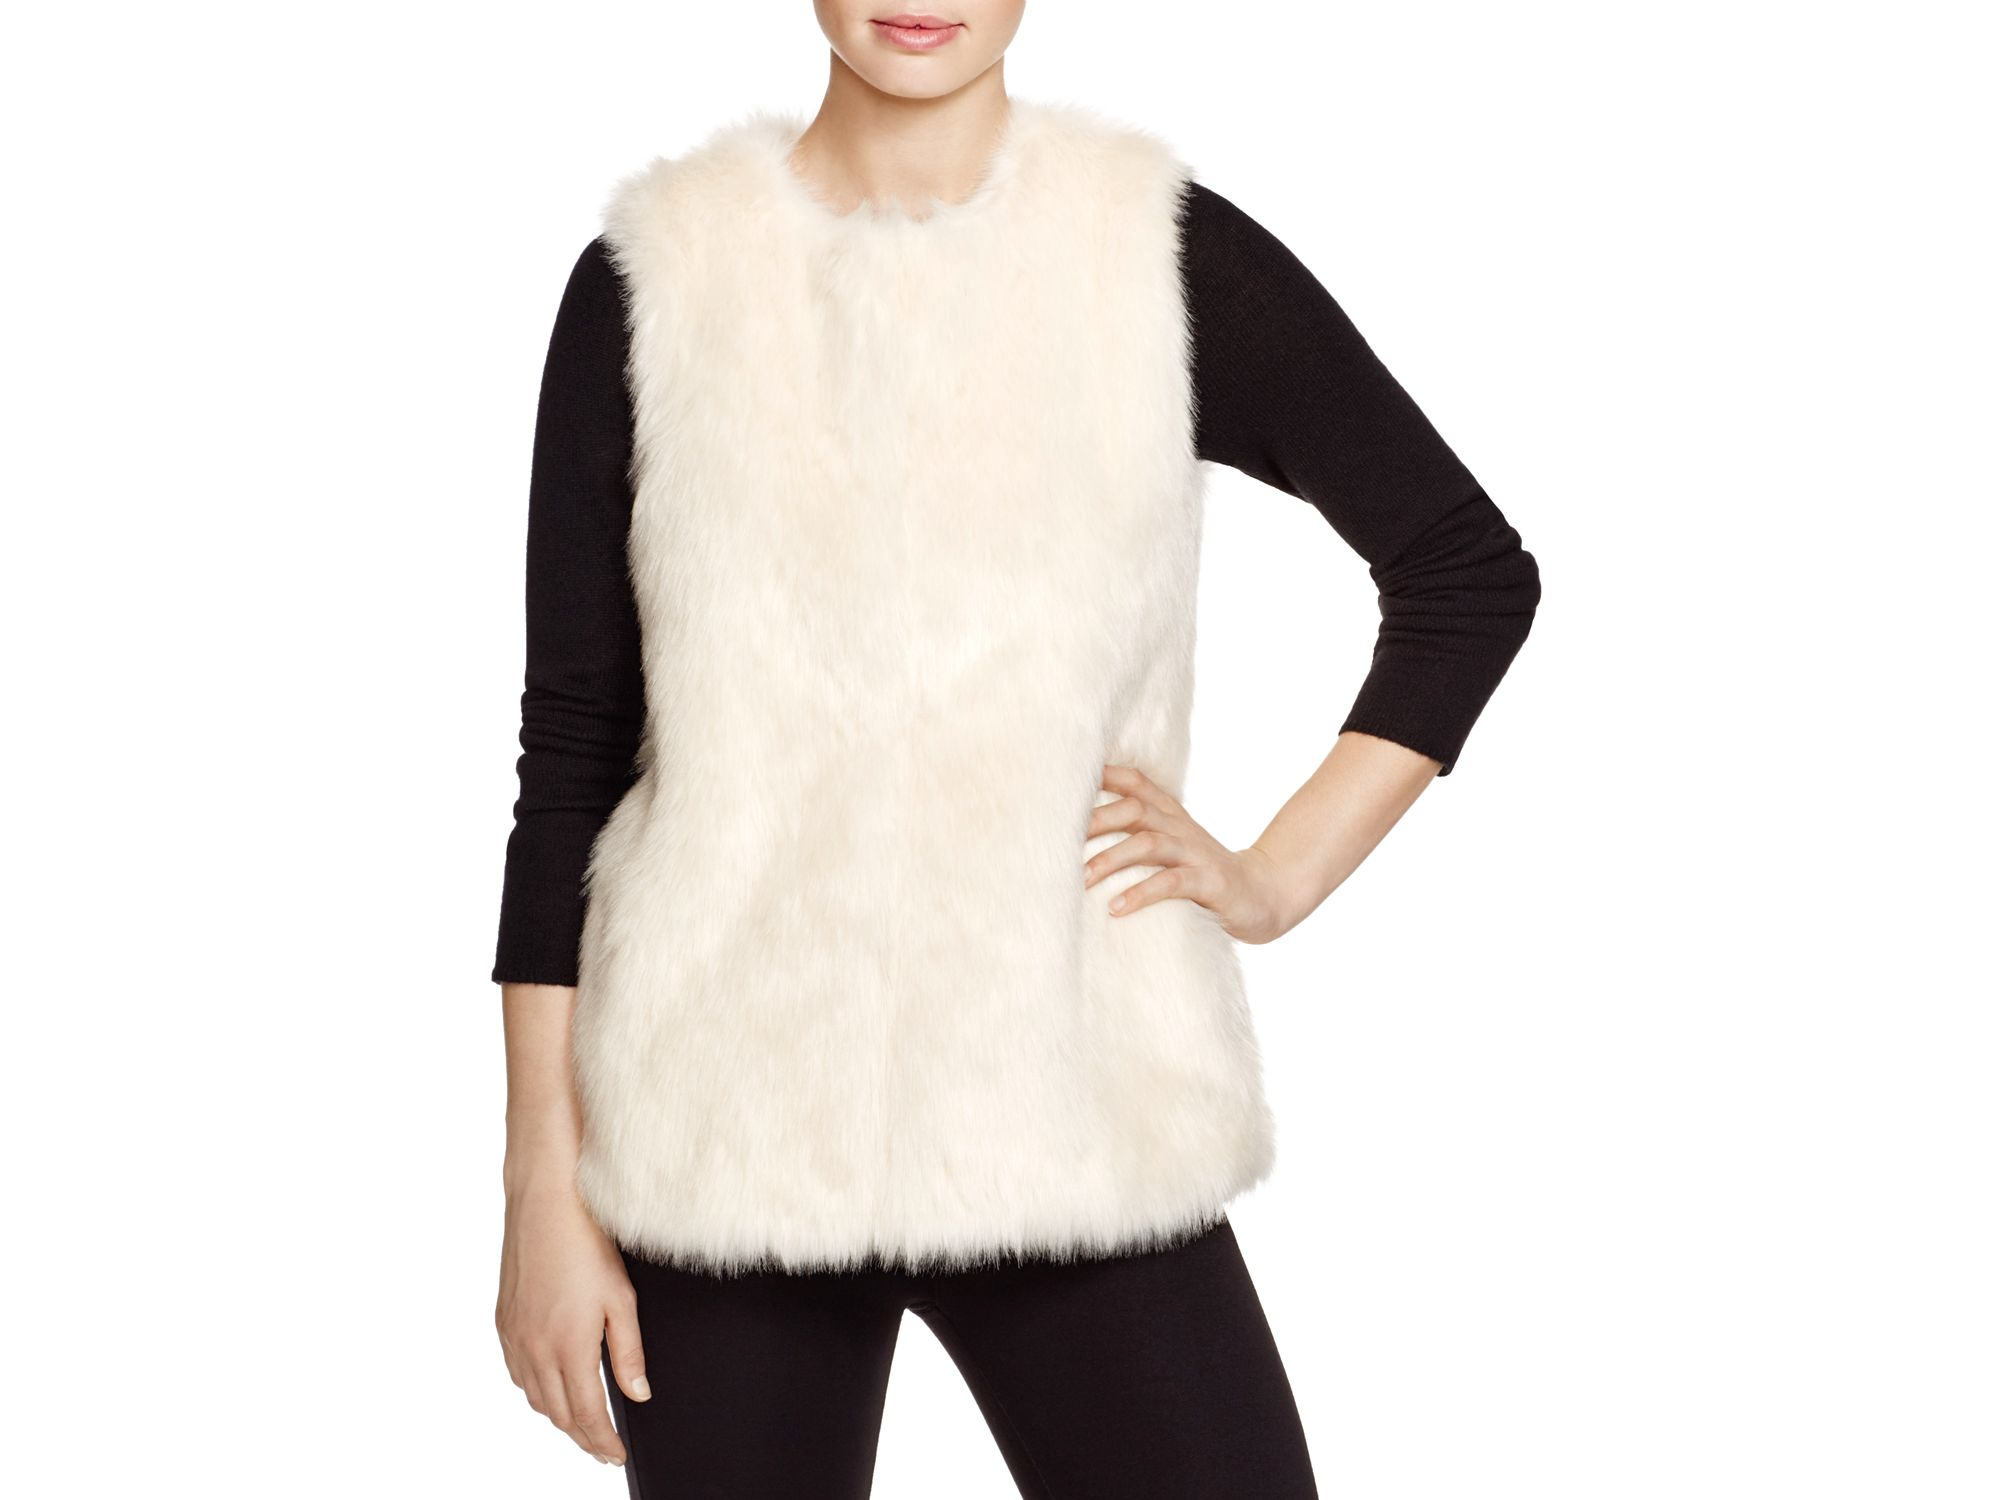 Faux Fur Vest: Ultra-soft and incredibly versatile, our faux fur vest is plush, warm and has a shawl collar, side pockets and three hidden clasp closures. It pairs well with so many styles and keeps you looking classically cozy all season long.